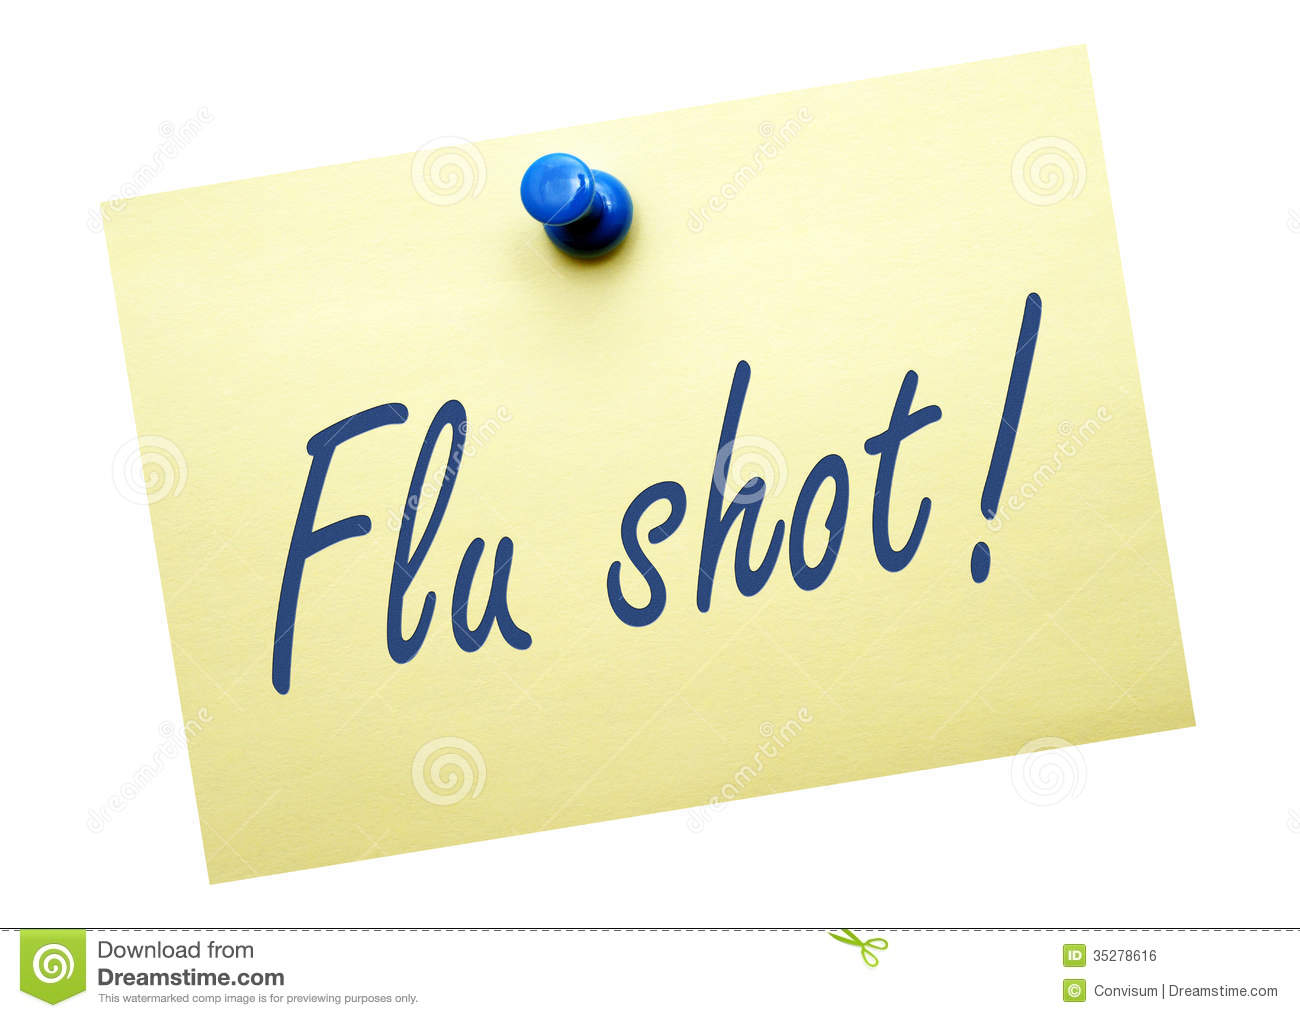 flu shot reminder royalty free stock image image 35278616 shingles vaccine clipart vaccine clipart